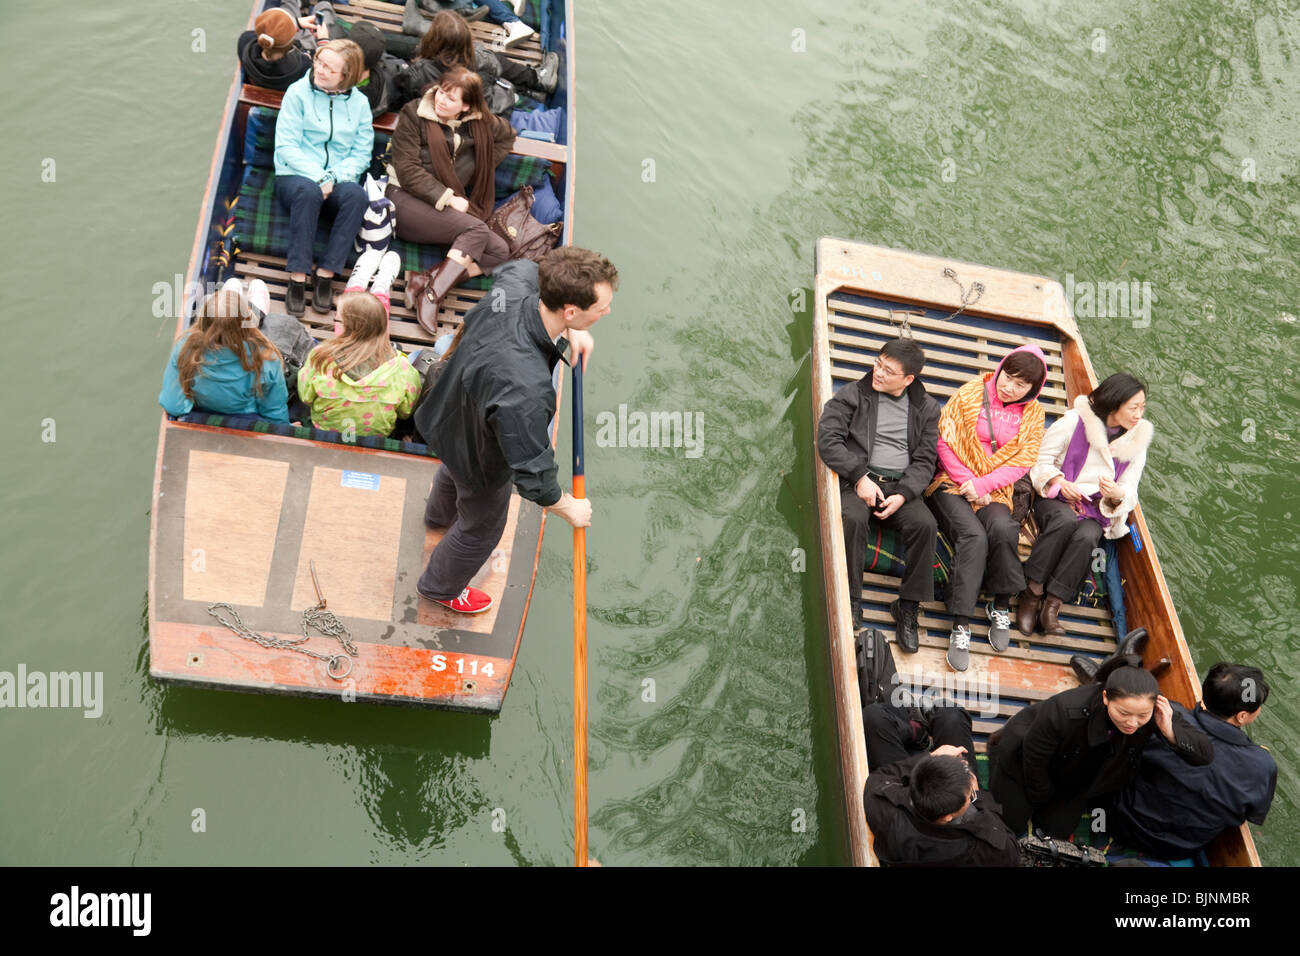 Teenagers in two punts, seen from above, River Cam, Cambridge UK - Stock Image